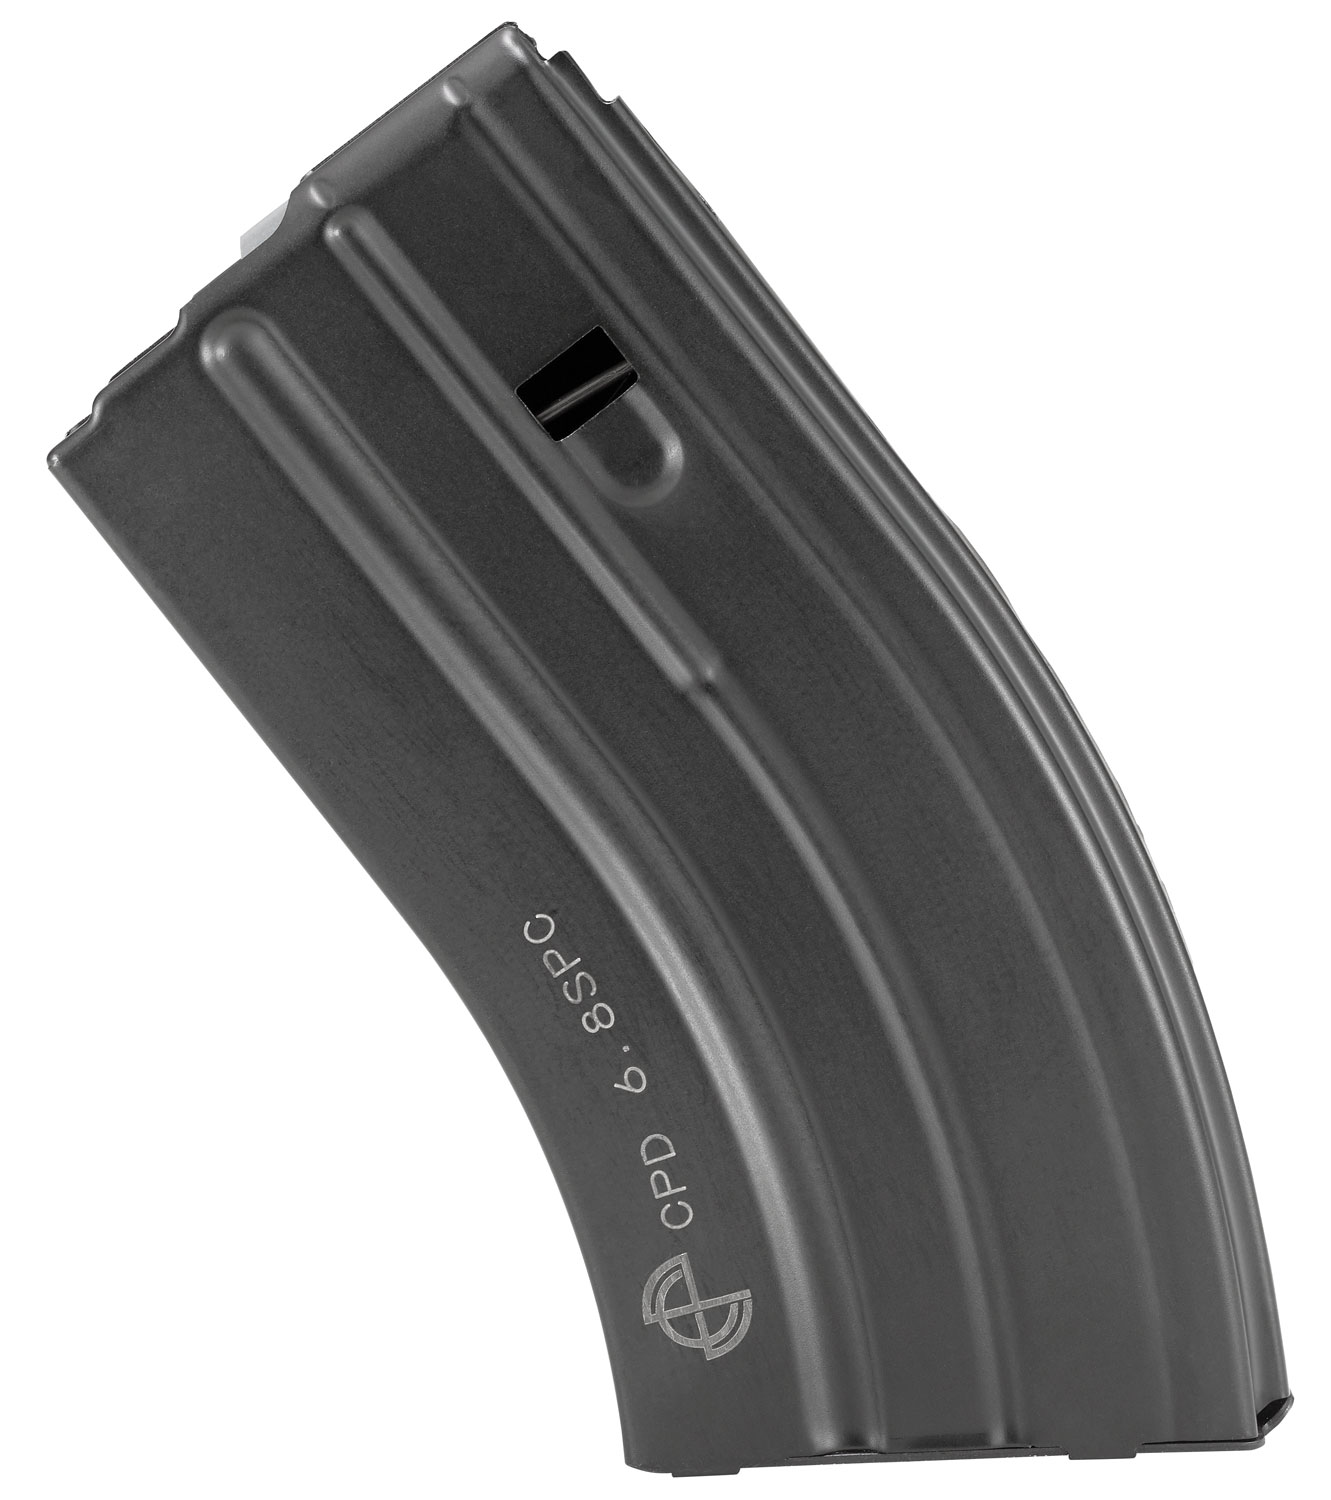 C Products Defense Inc 2068041207CP Rifle   6.8 SPC 20 Round Stainless Steel Black Finish with Gray Follower